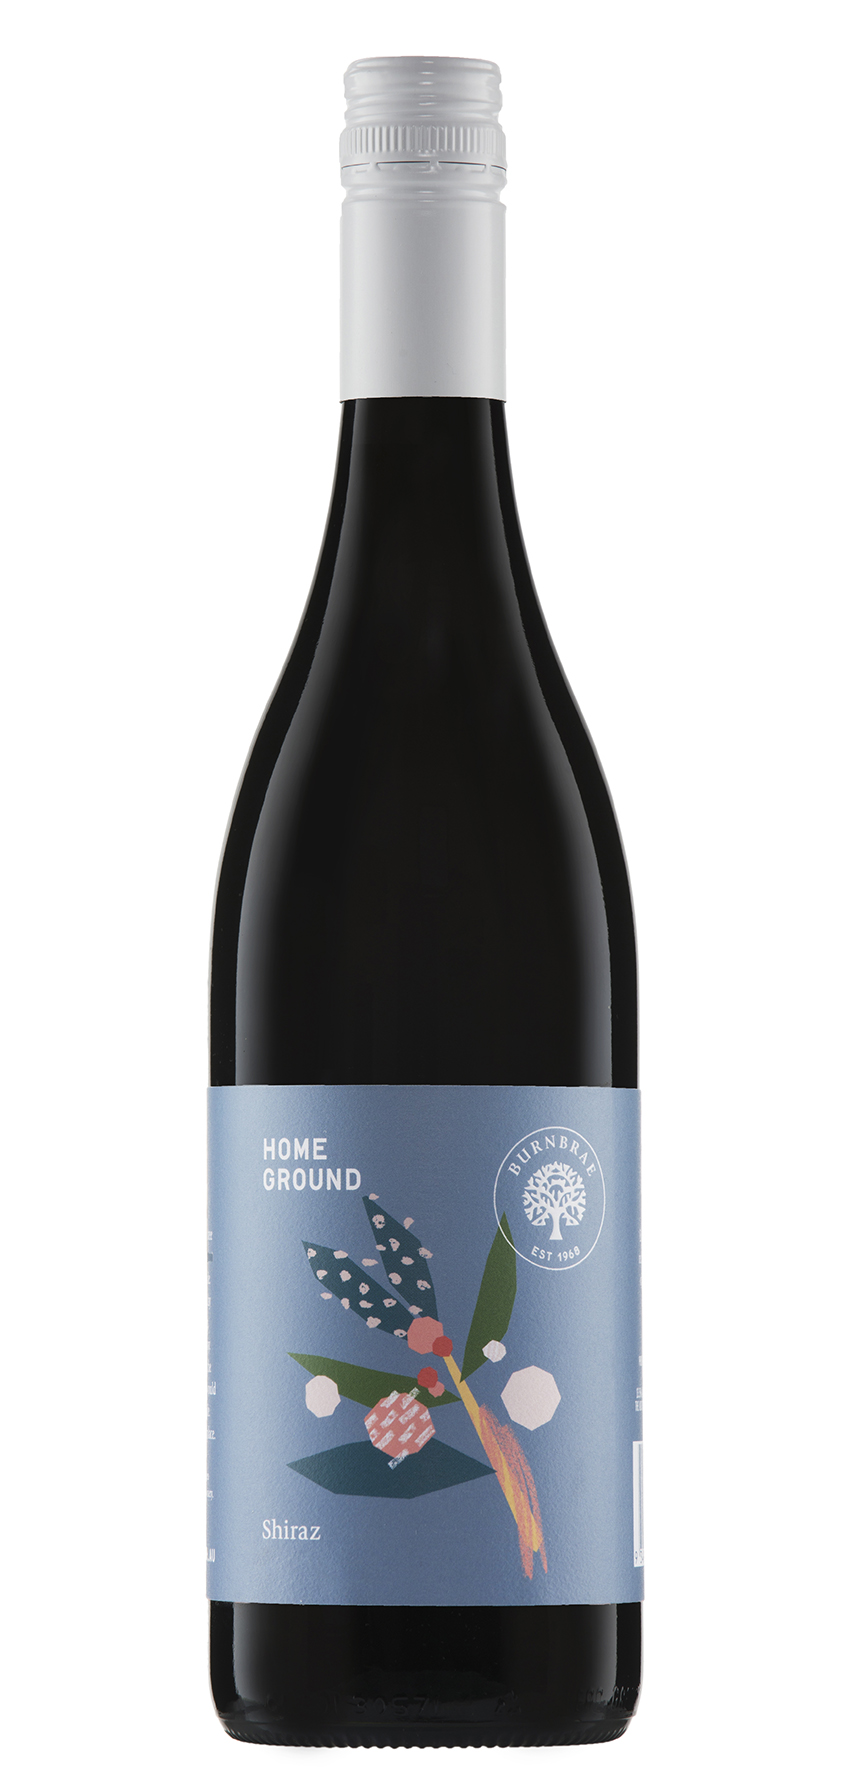 Home Ground Shiraz 2018